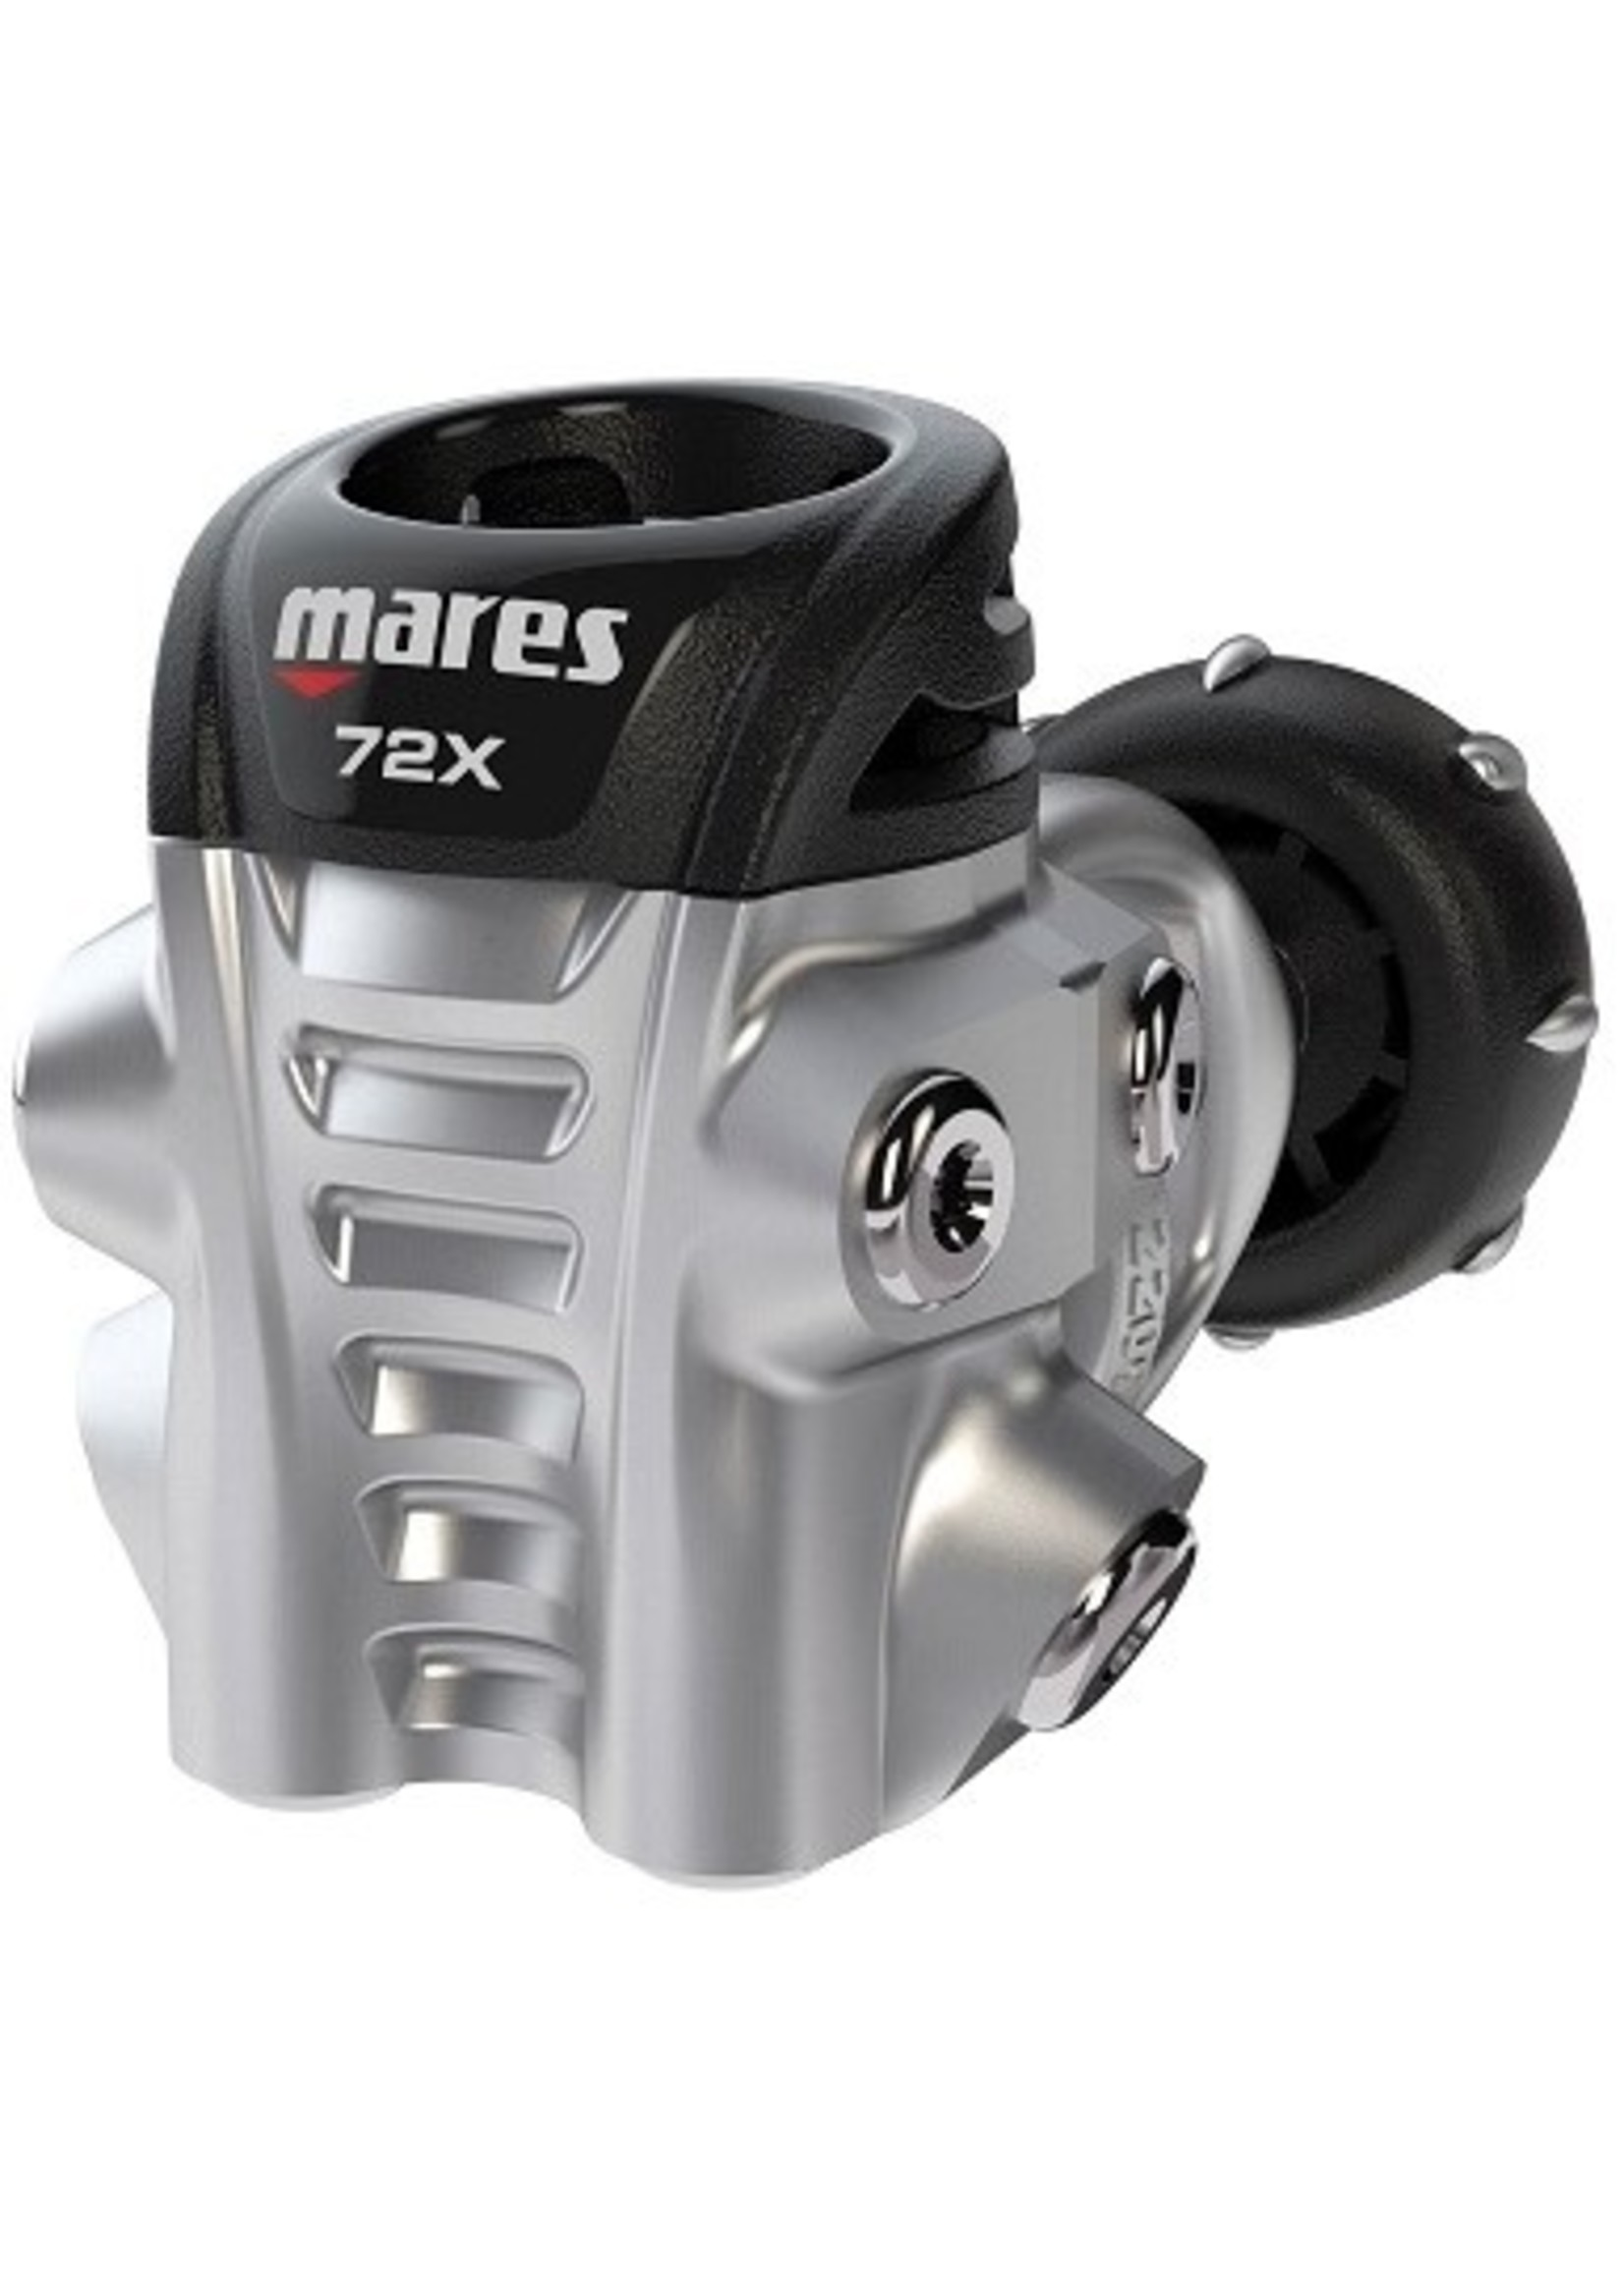 Mares Mares 1st Stage - 72X